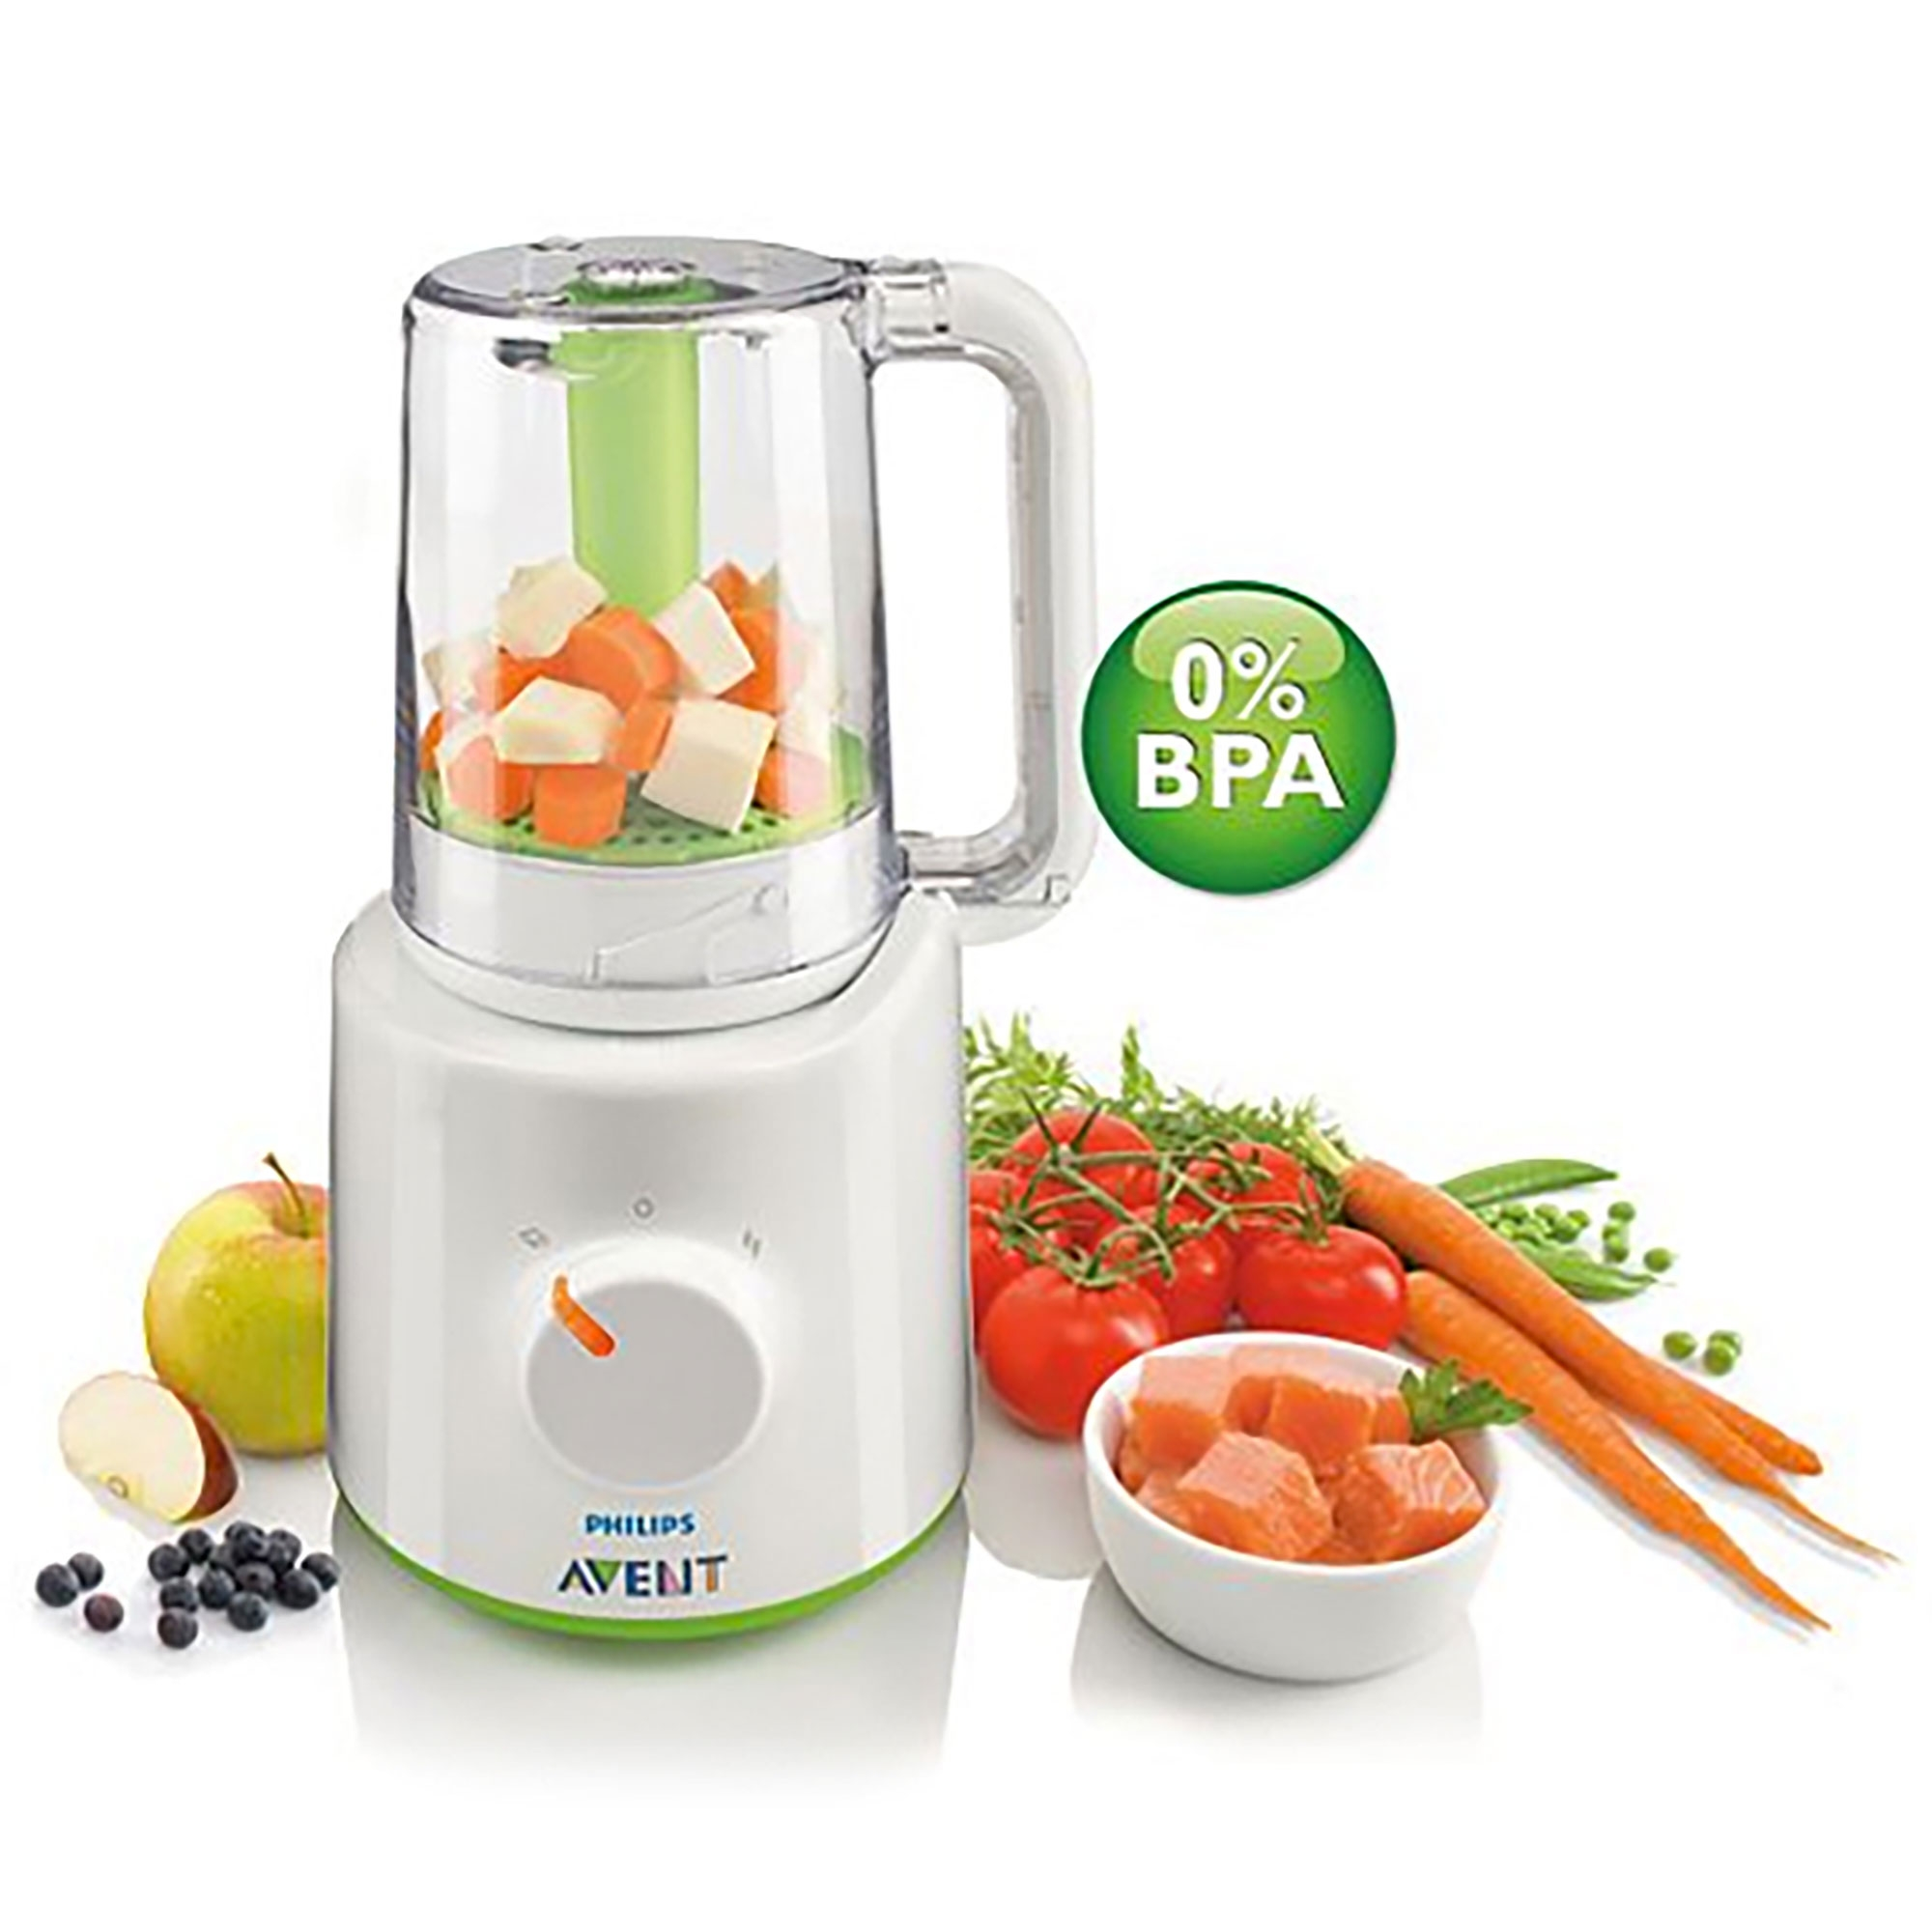 Details About Avent Baby Food Steam Blender 2 In 1